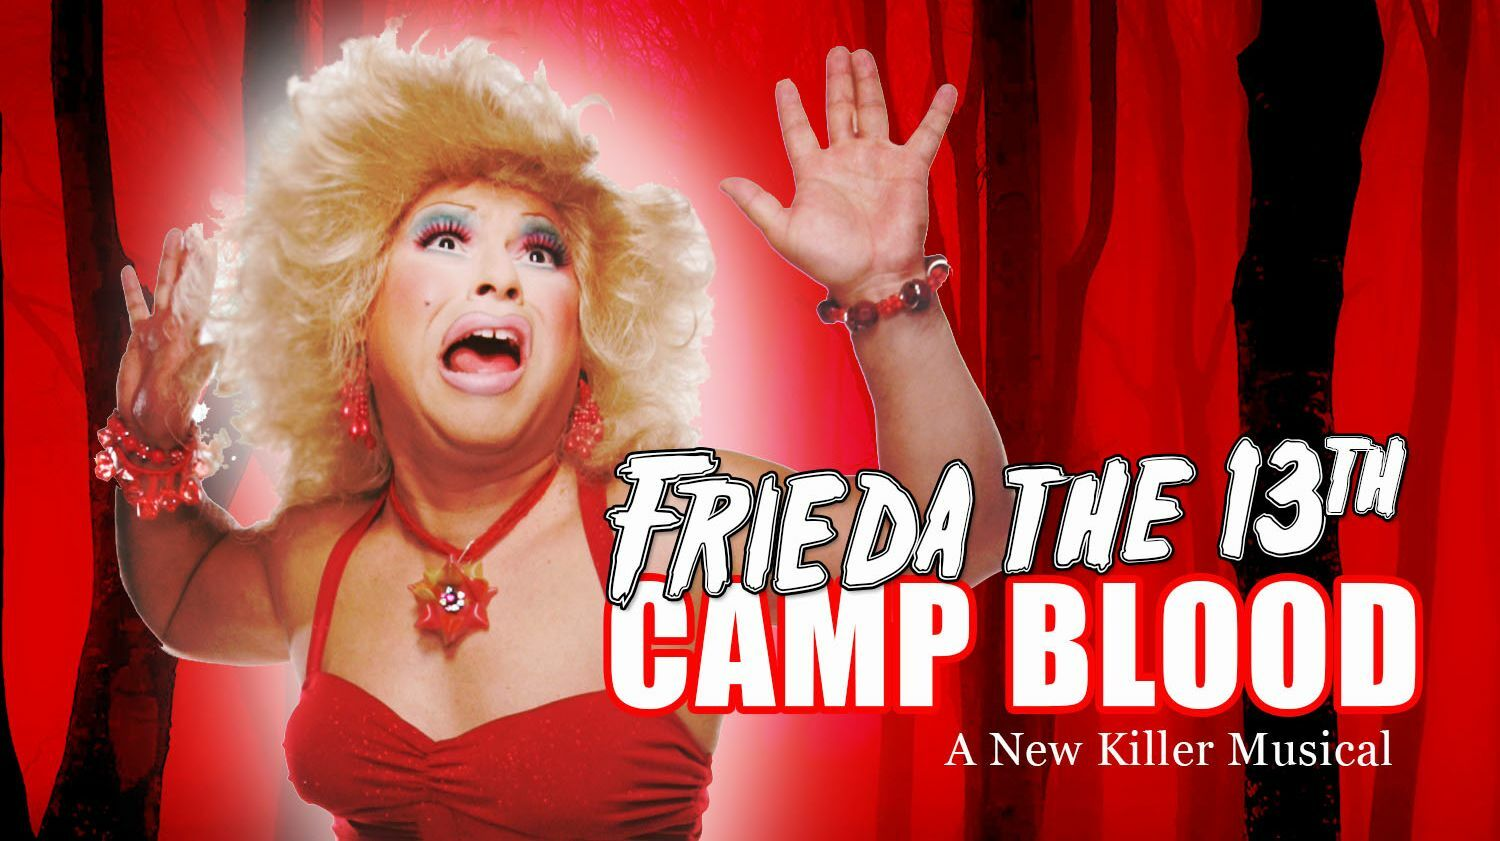 Frieda the 13th: Camp Blood